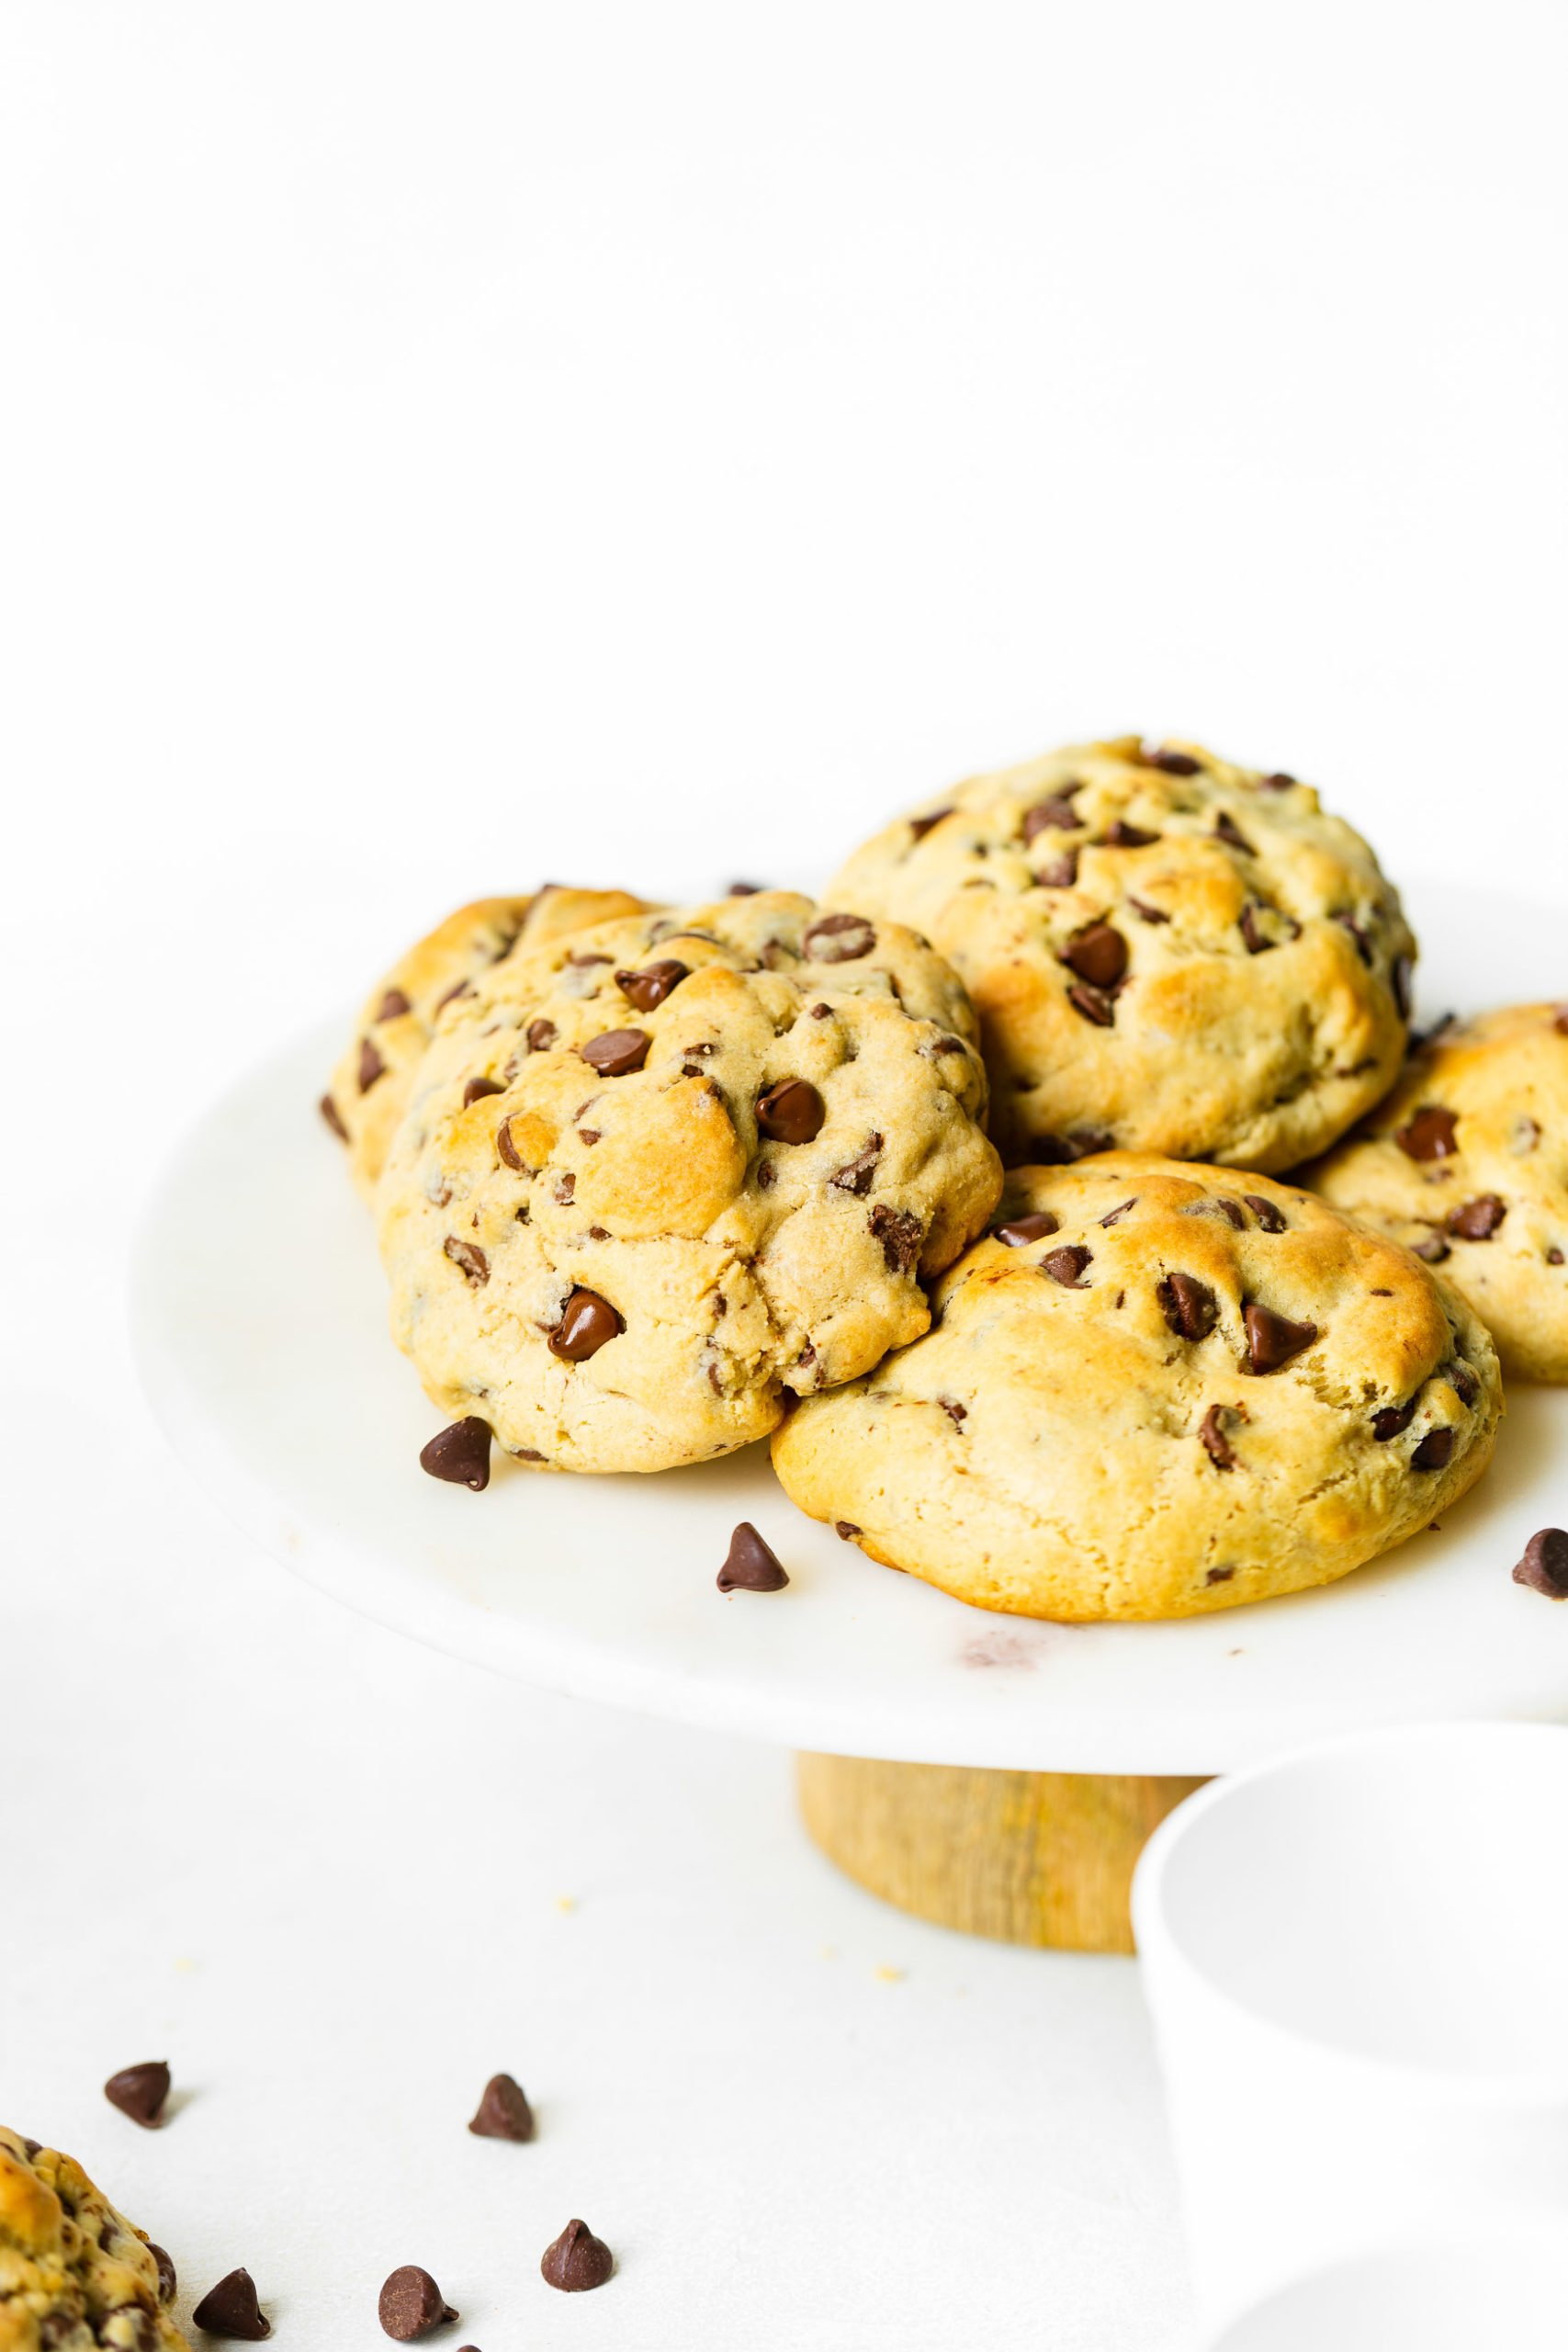 a photo of a pile of thick, perfectly golden chocolate chip cookies sitting on a white cake stand with chocolate chips scattered around.